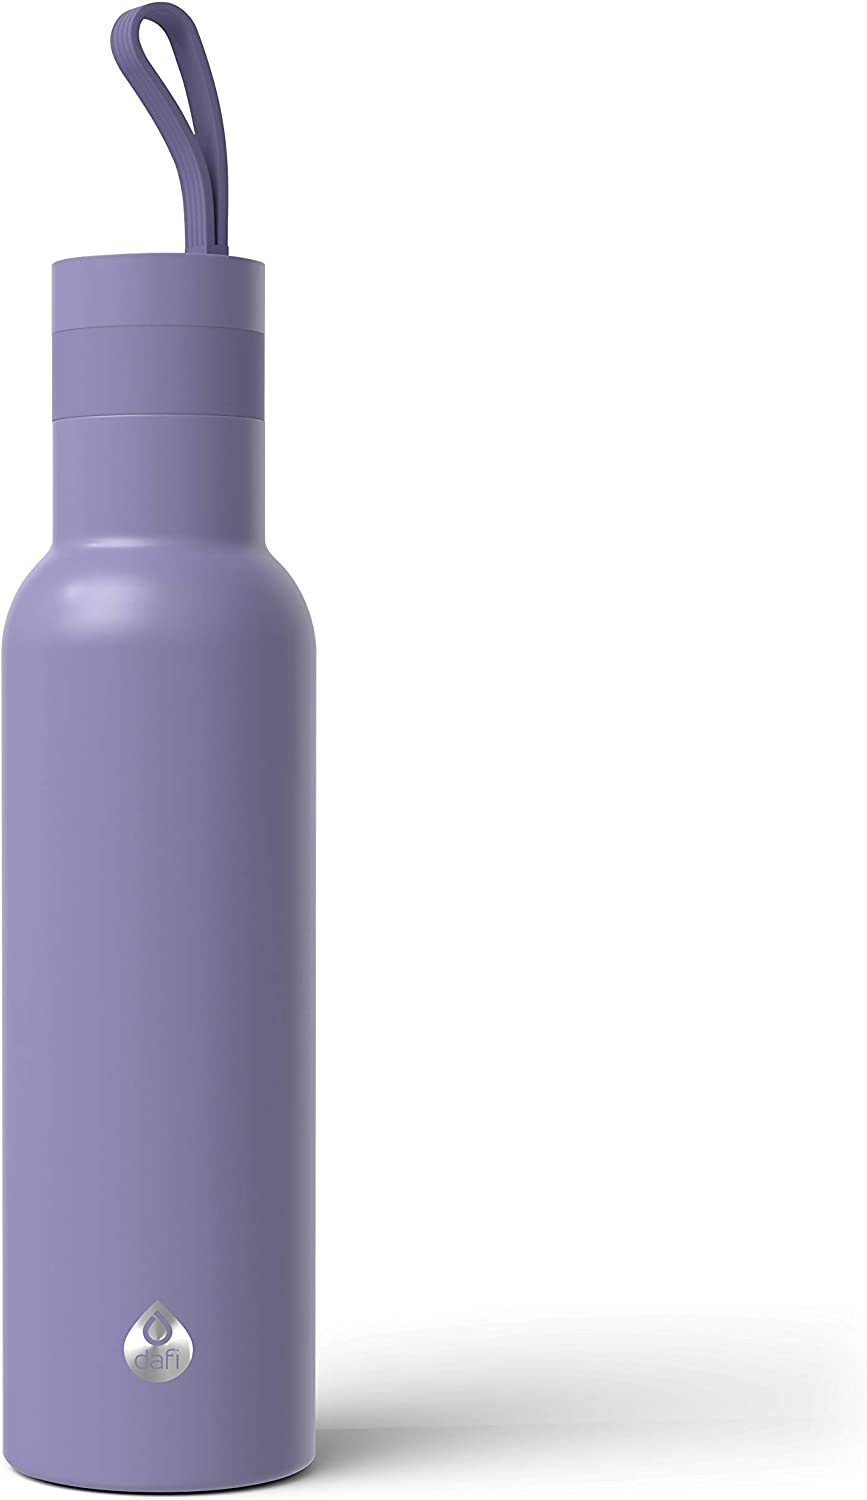 Dafi Double Wall Insulated Stainless Steel Thermal Bottle 17 fl oz Made in Europe BPA-Free (Violet)